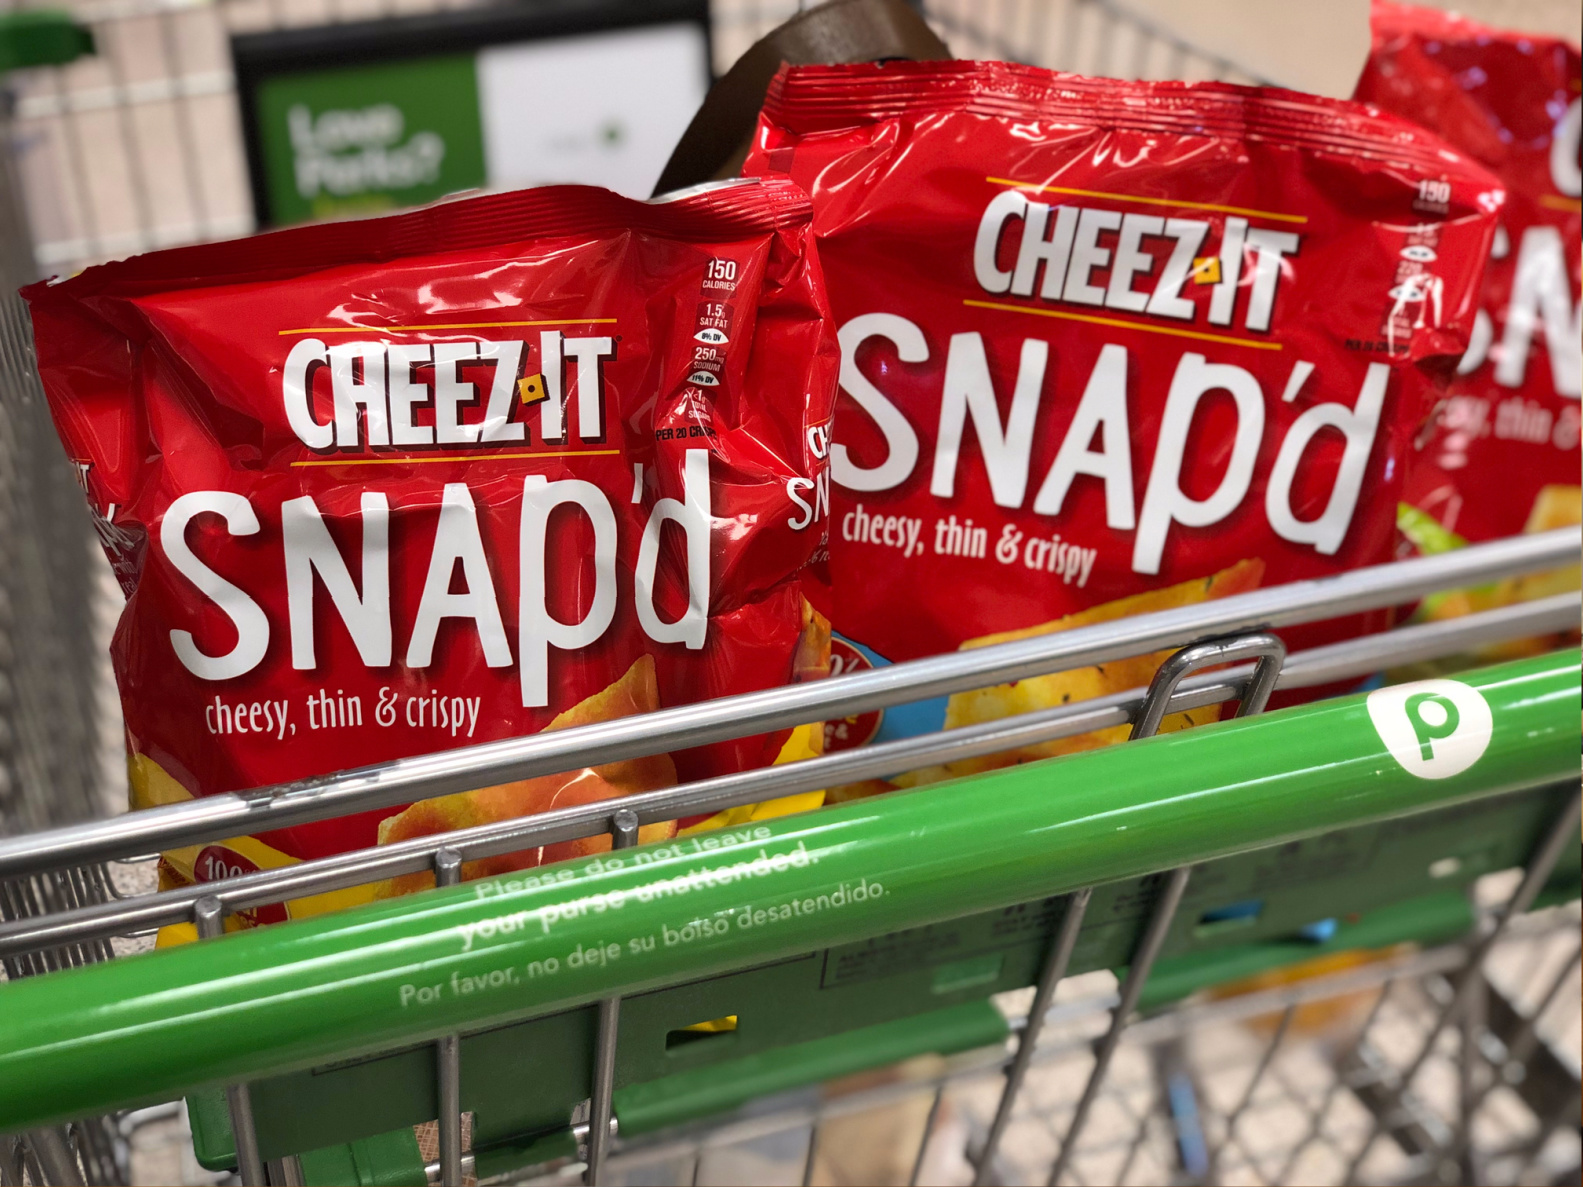 Don't Miss The Deal On Cheez-It Snap'd - Be Ready For Holiday Entertaining! on I Heart Publix